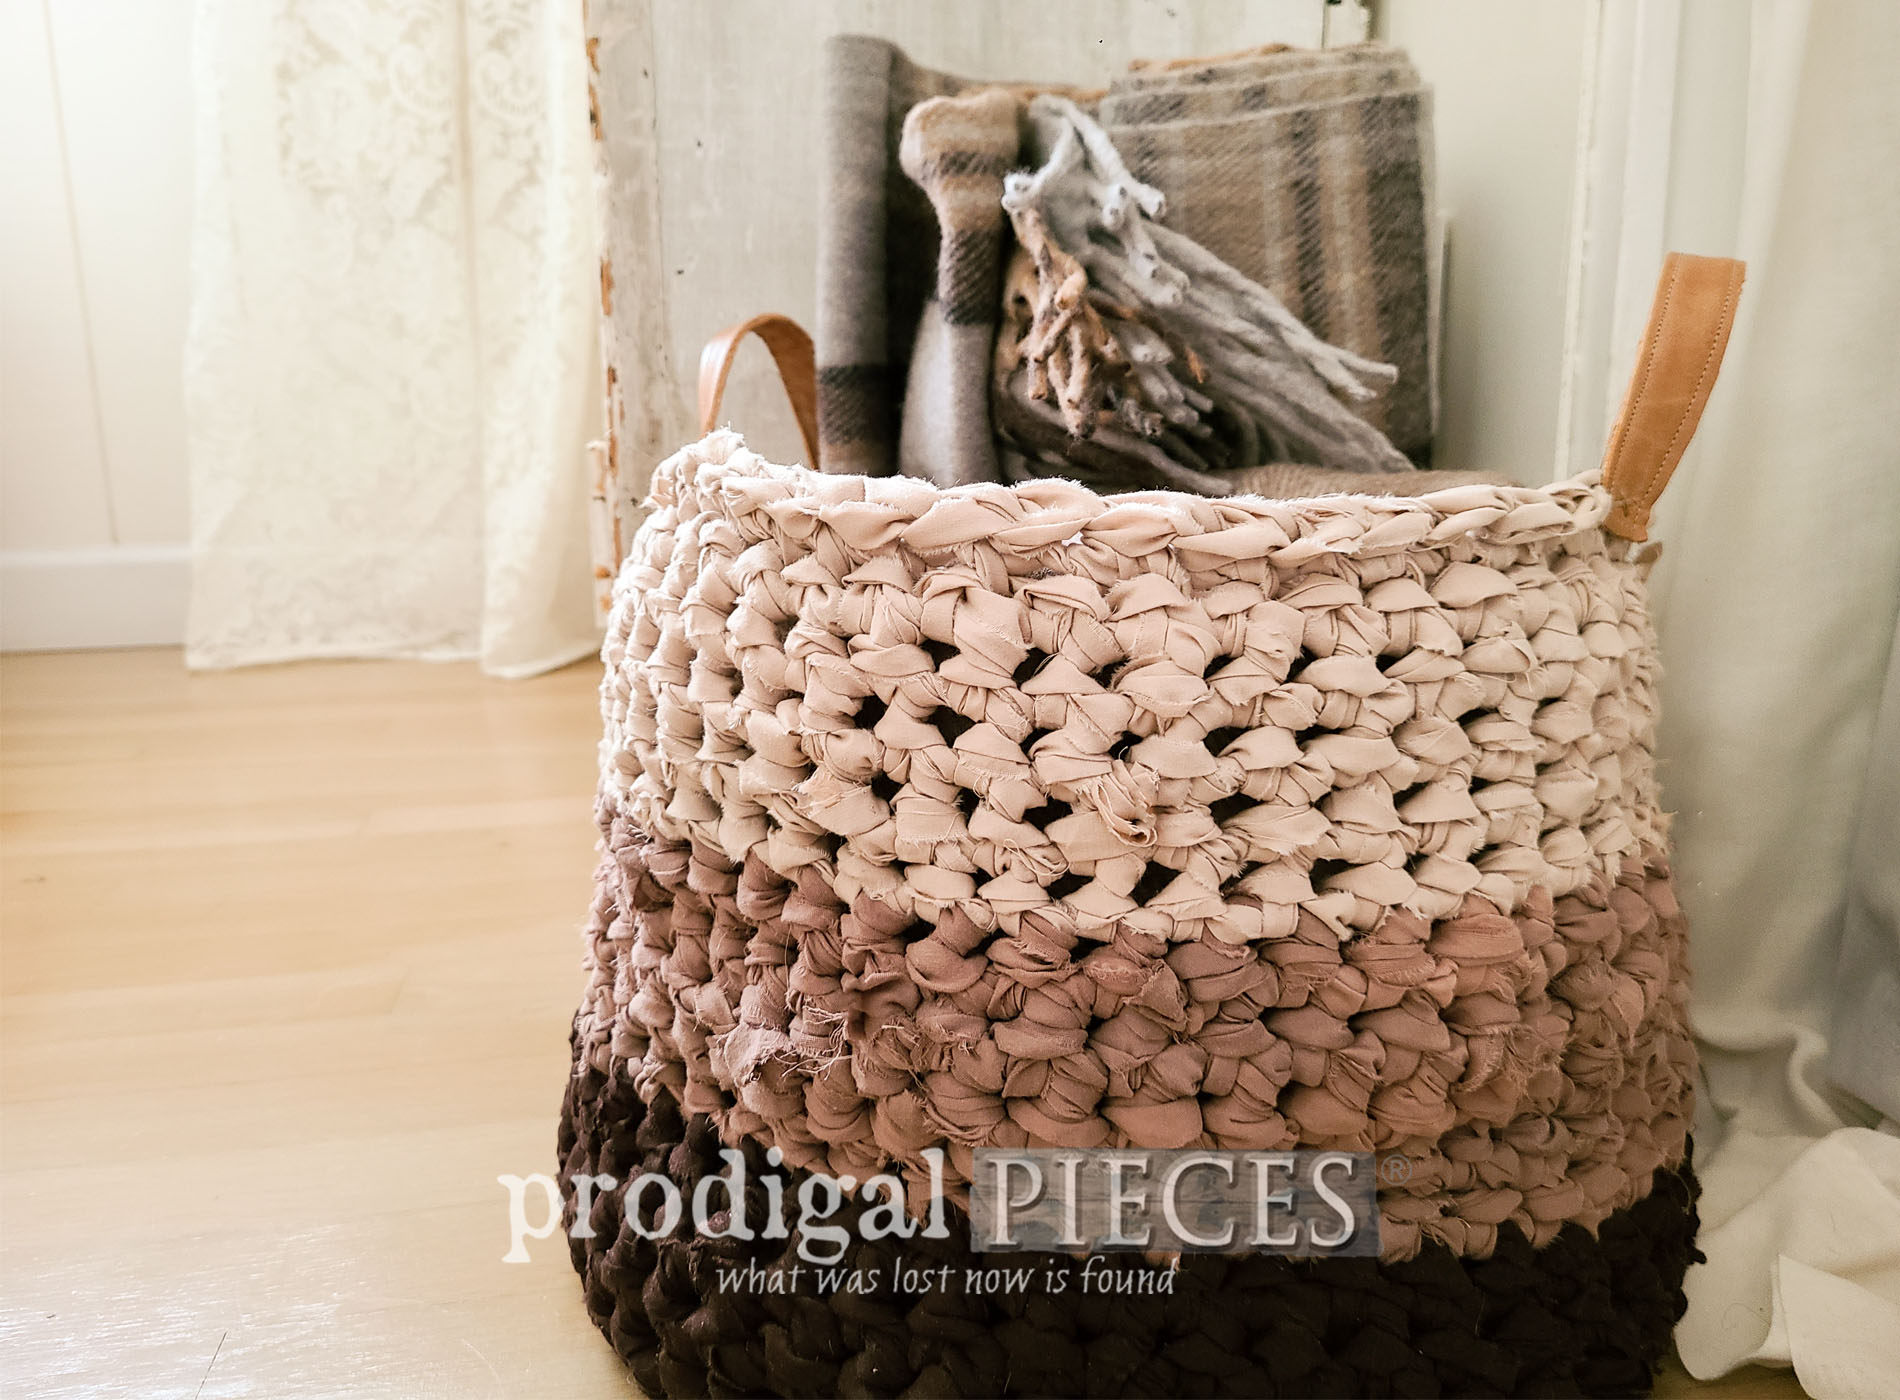 Featured DIY Crochet Basket from Upcycled Bed Sheets by Larissa of Prodigal Pieces | prodigalpieces.com #prodigalpieces #diy #handmade #crochet #basket